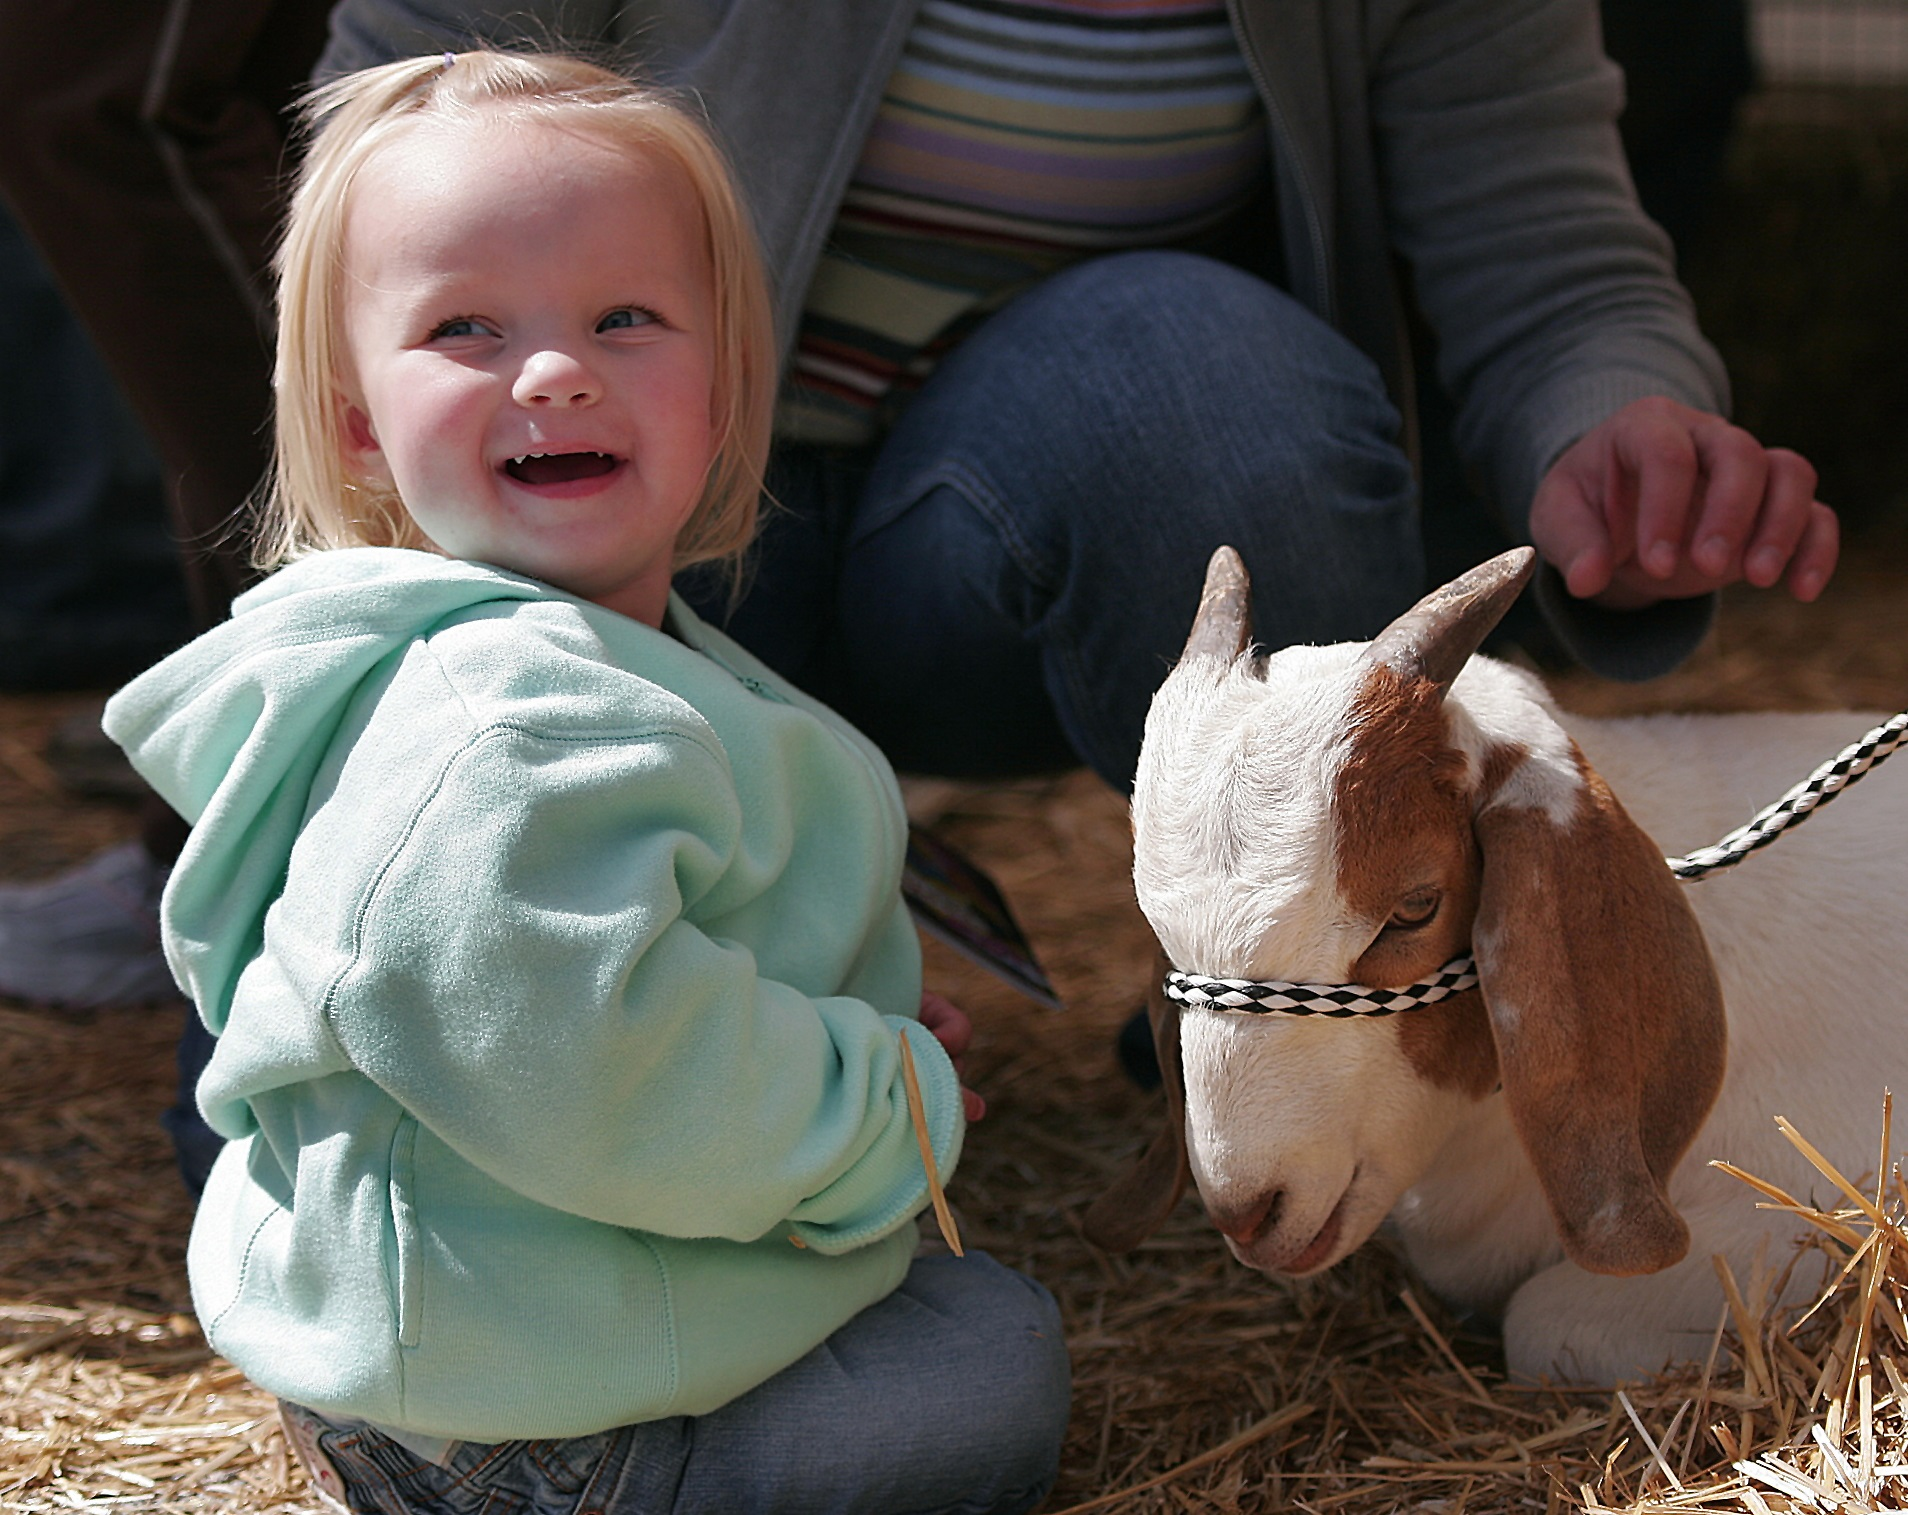 A petting zoo is an almost fool-proof photo opportunity - especially when little kids are involved. A town festival brought out the local FFA chapter, which provided a children's petting zoo featuring farm animals. This little girl's face registers excitement as she gets close to a resting goat.